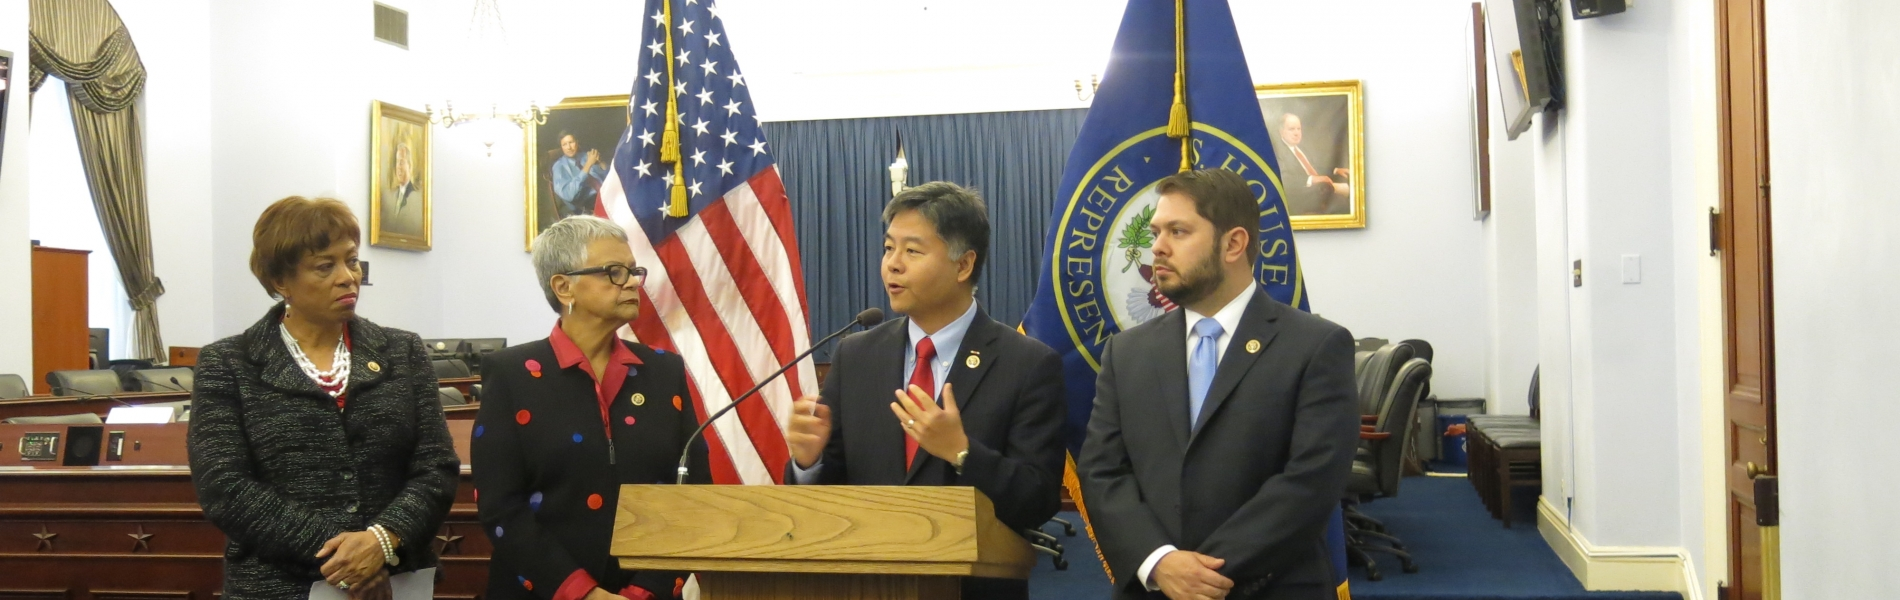 "Congressman Lieu Introduces the ""No Money Bail Act of 2016"""